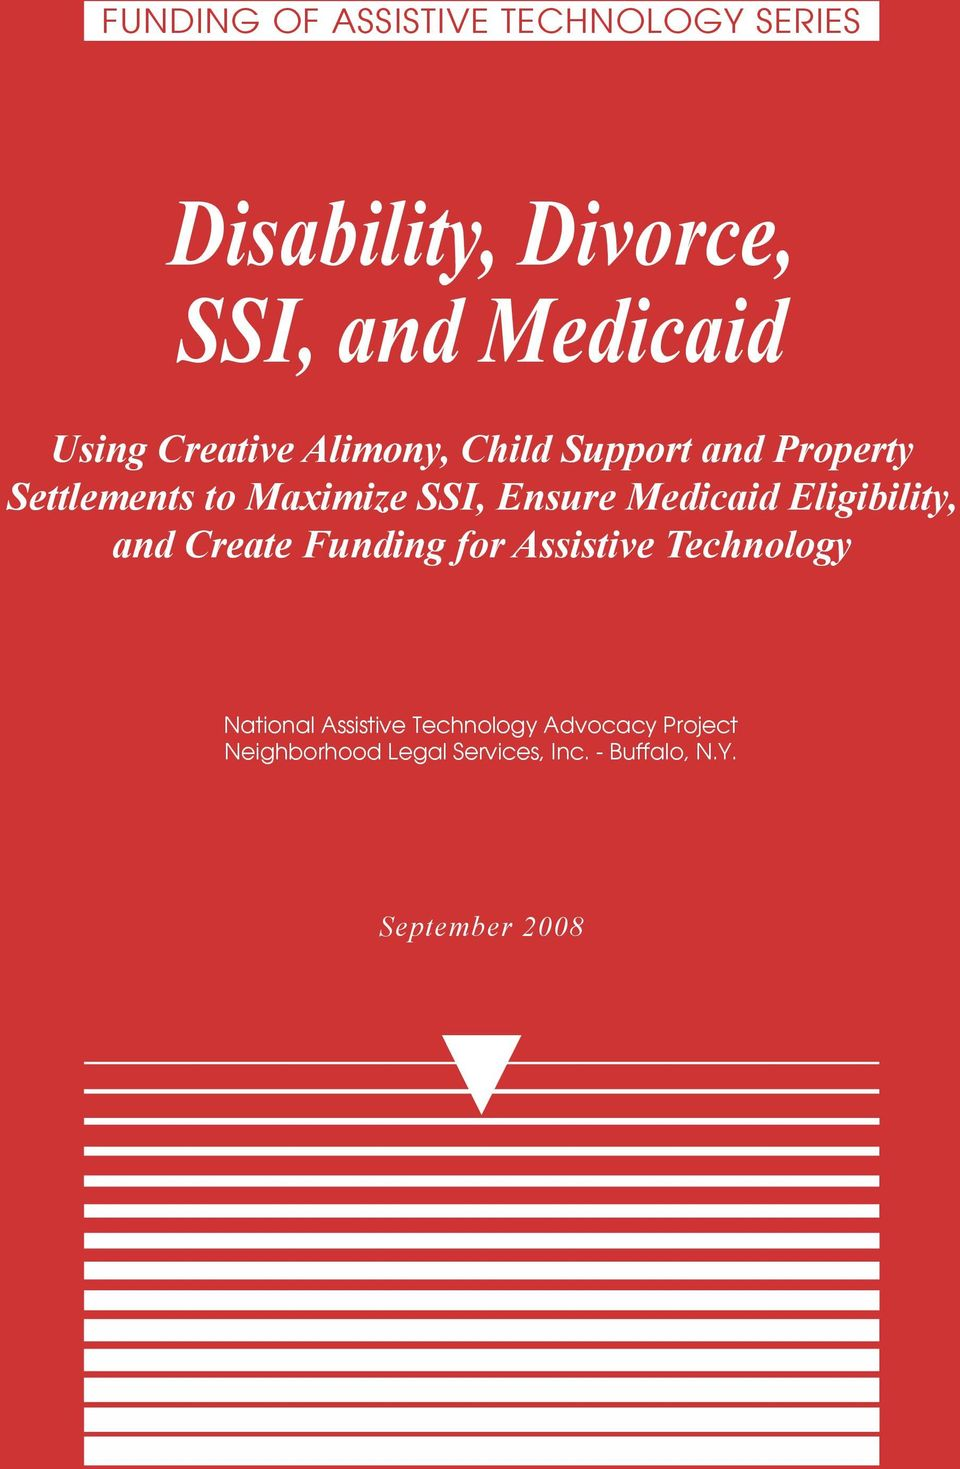 Medicaid Eligibility, and Create Funding for Assistive Technology National Assistive